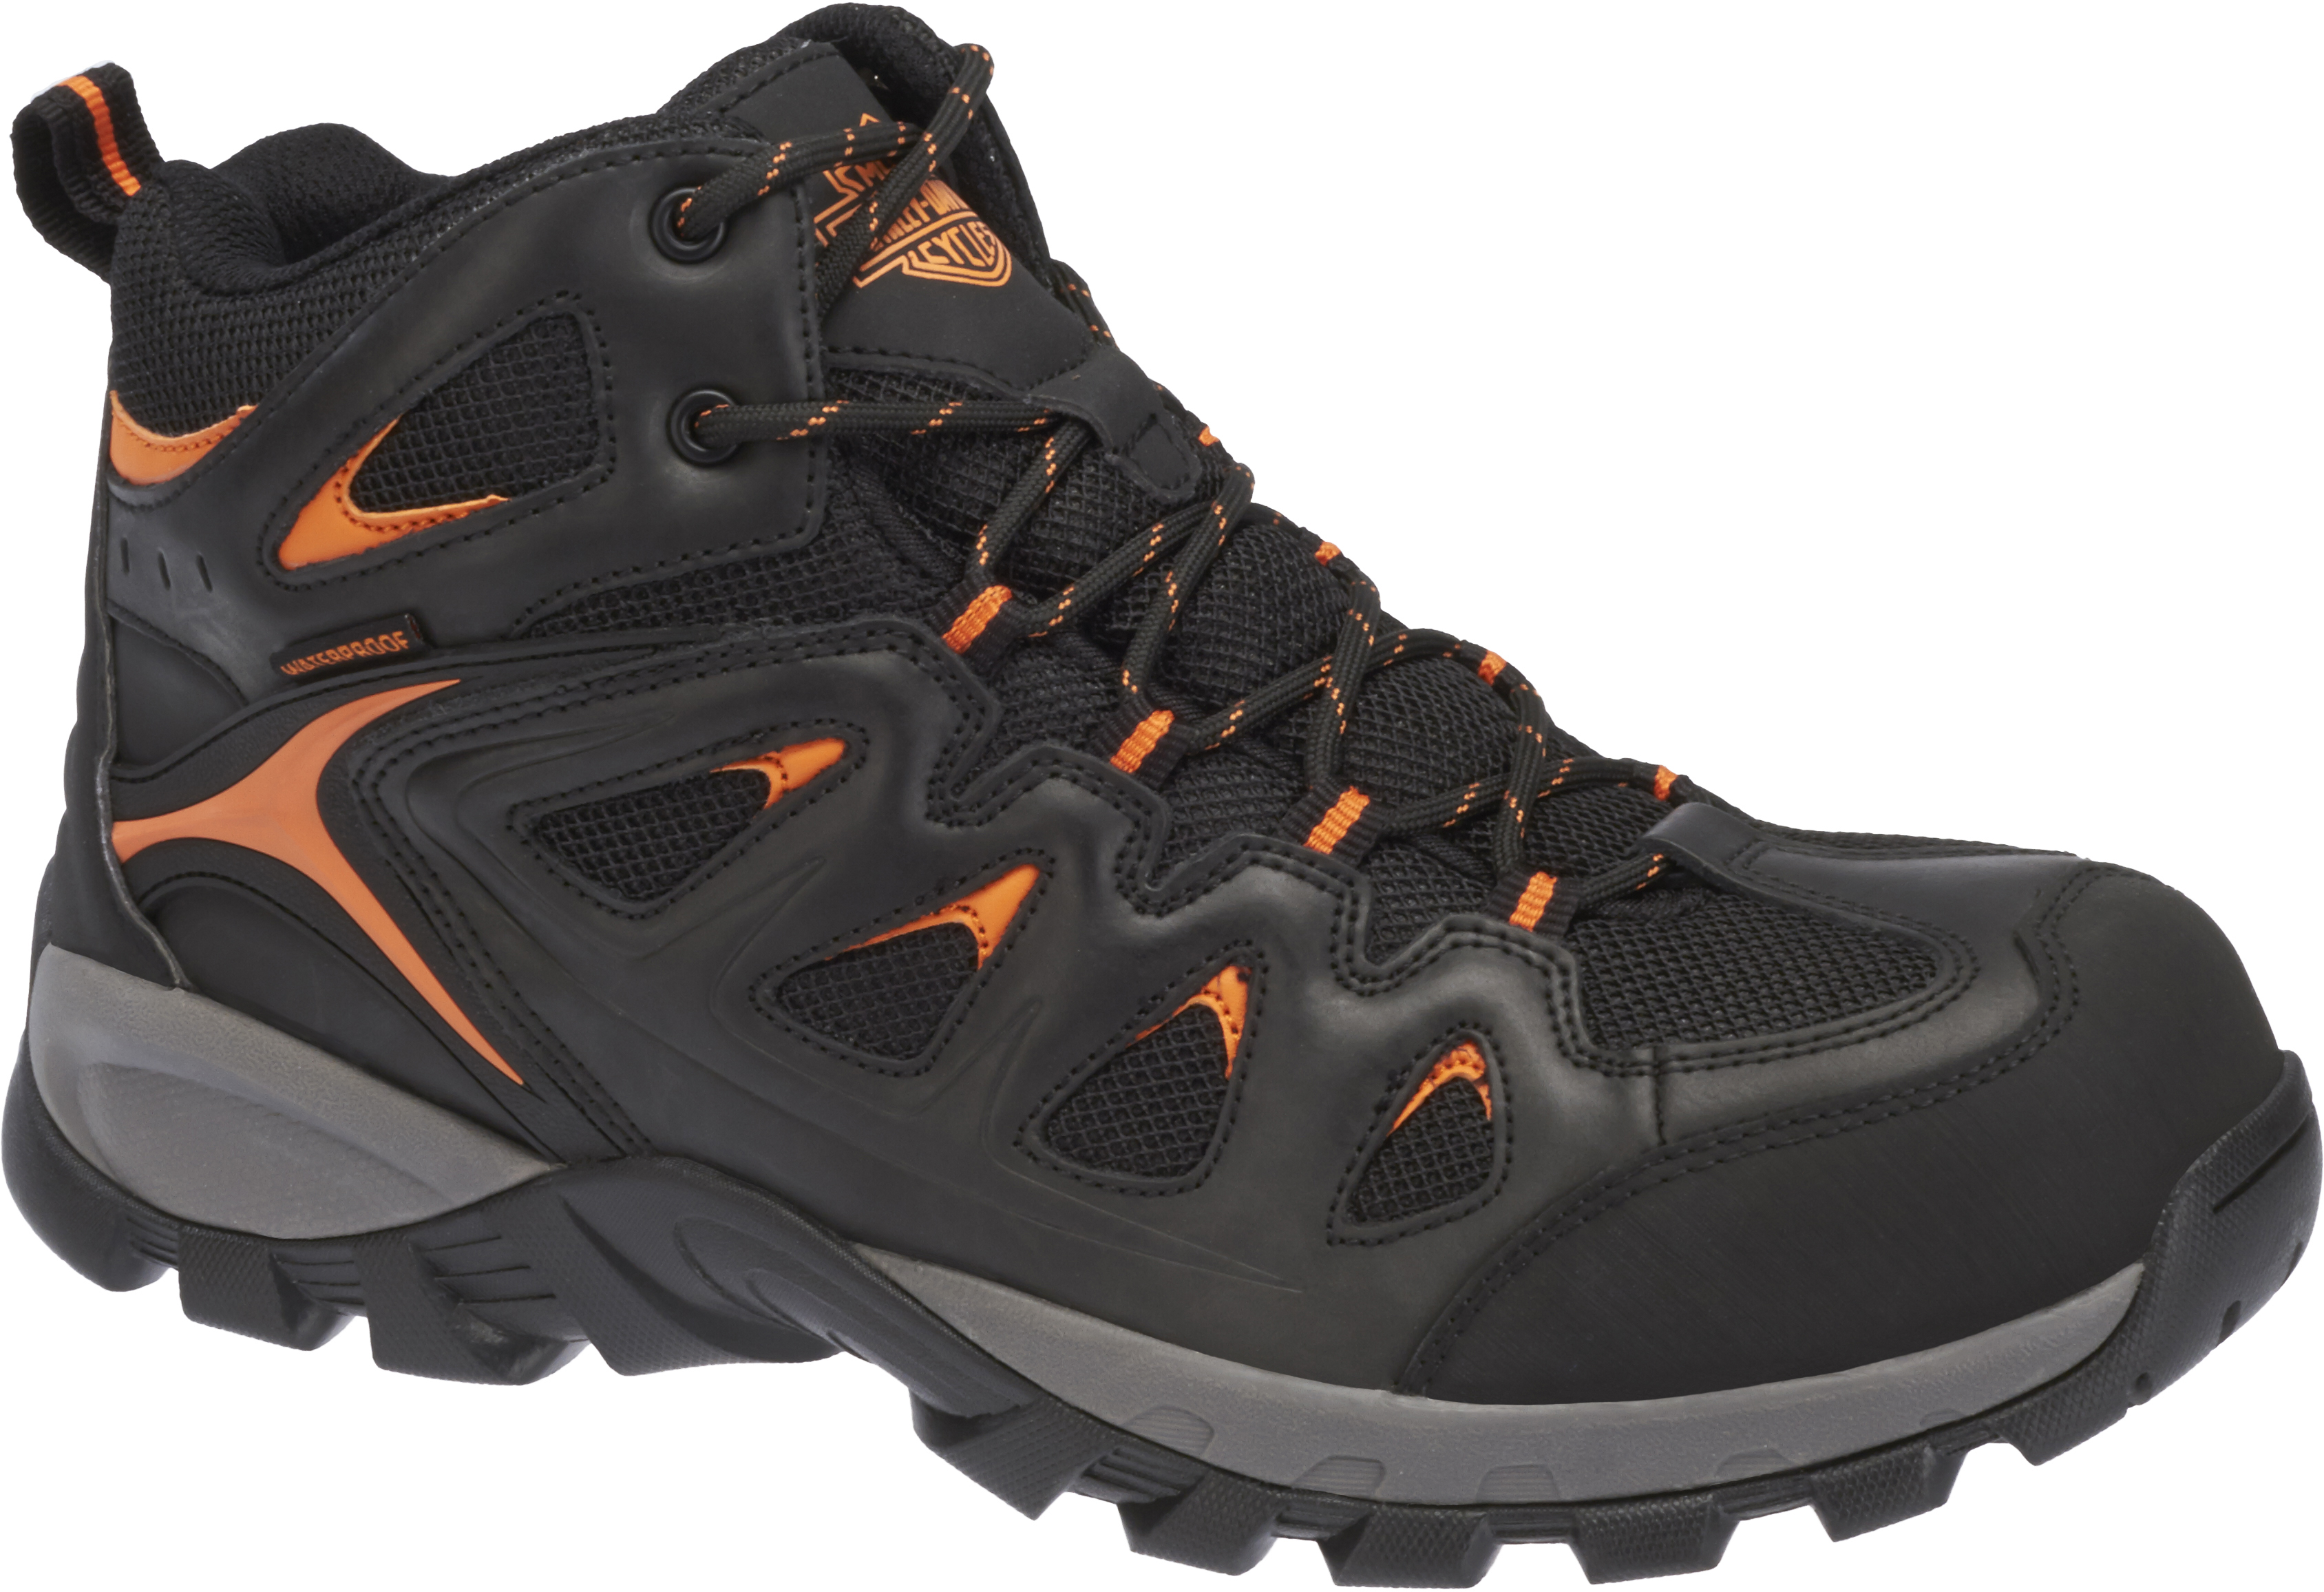 Harley Davidson Men's Hiker